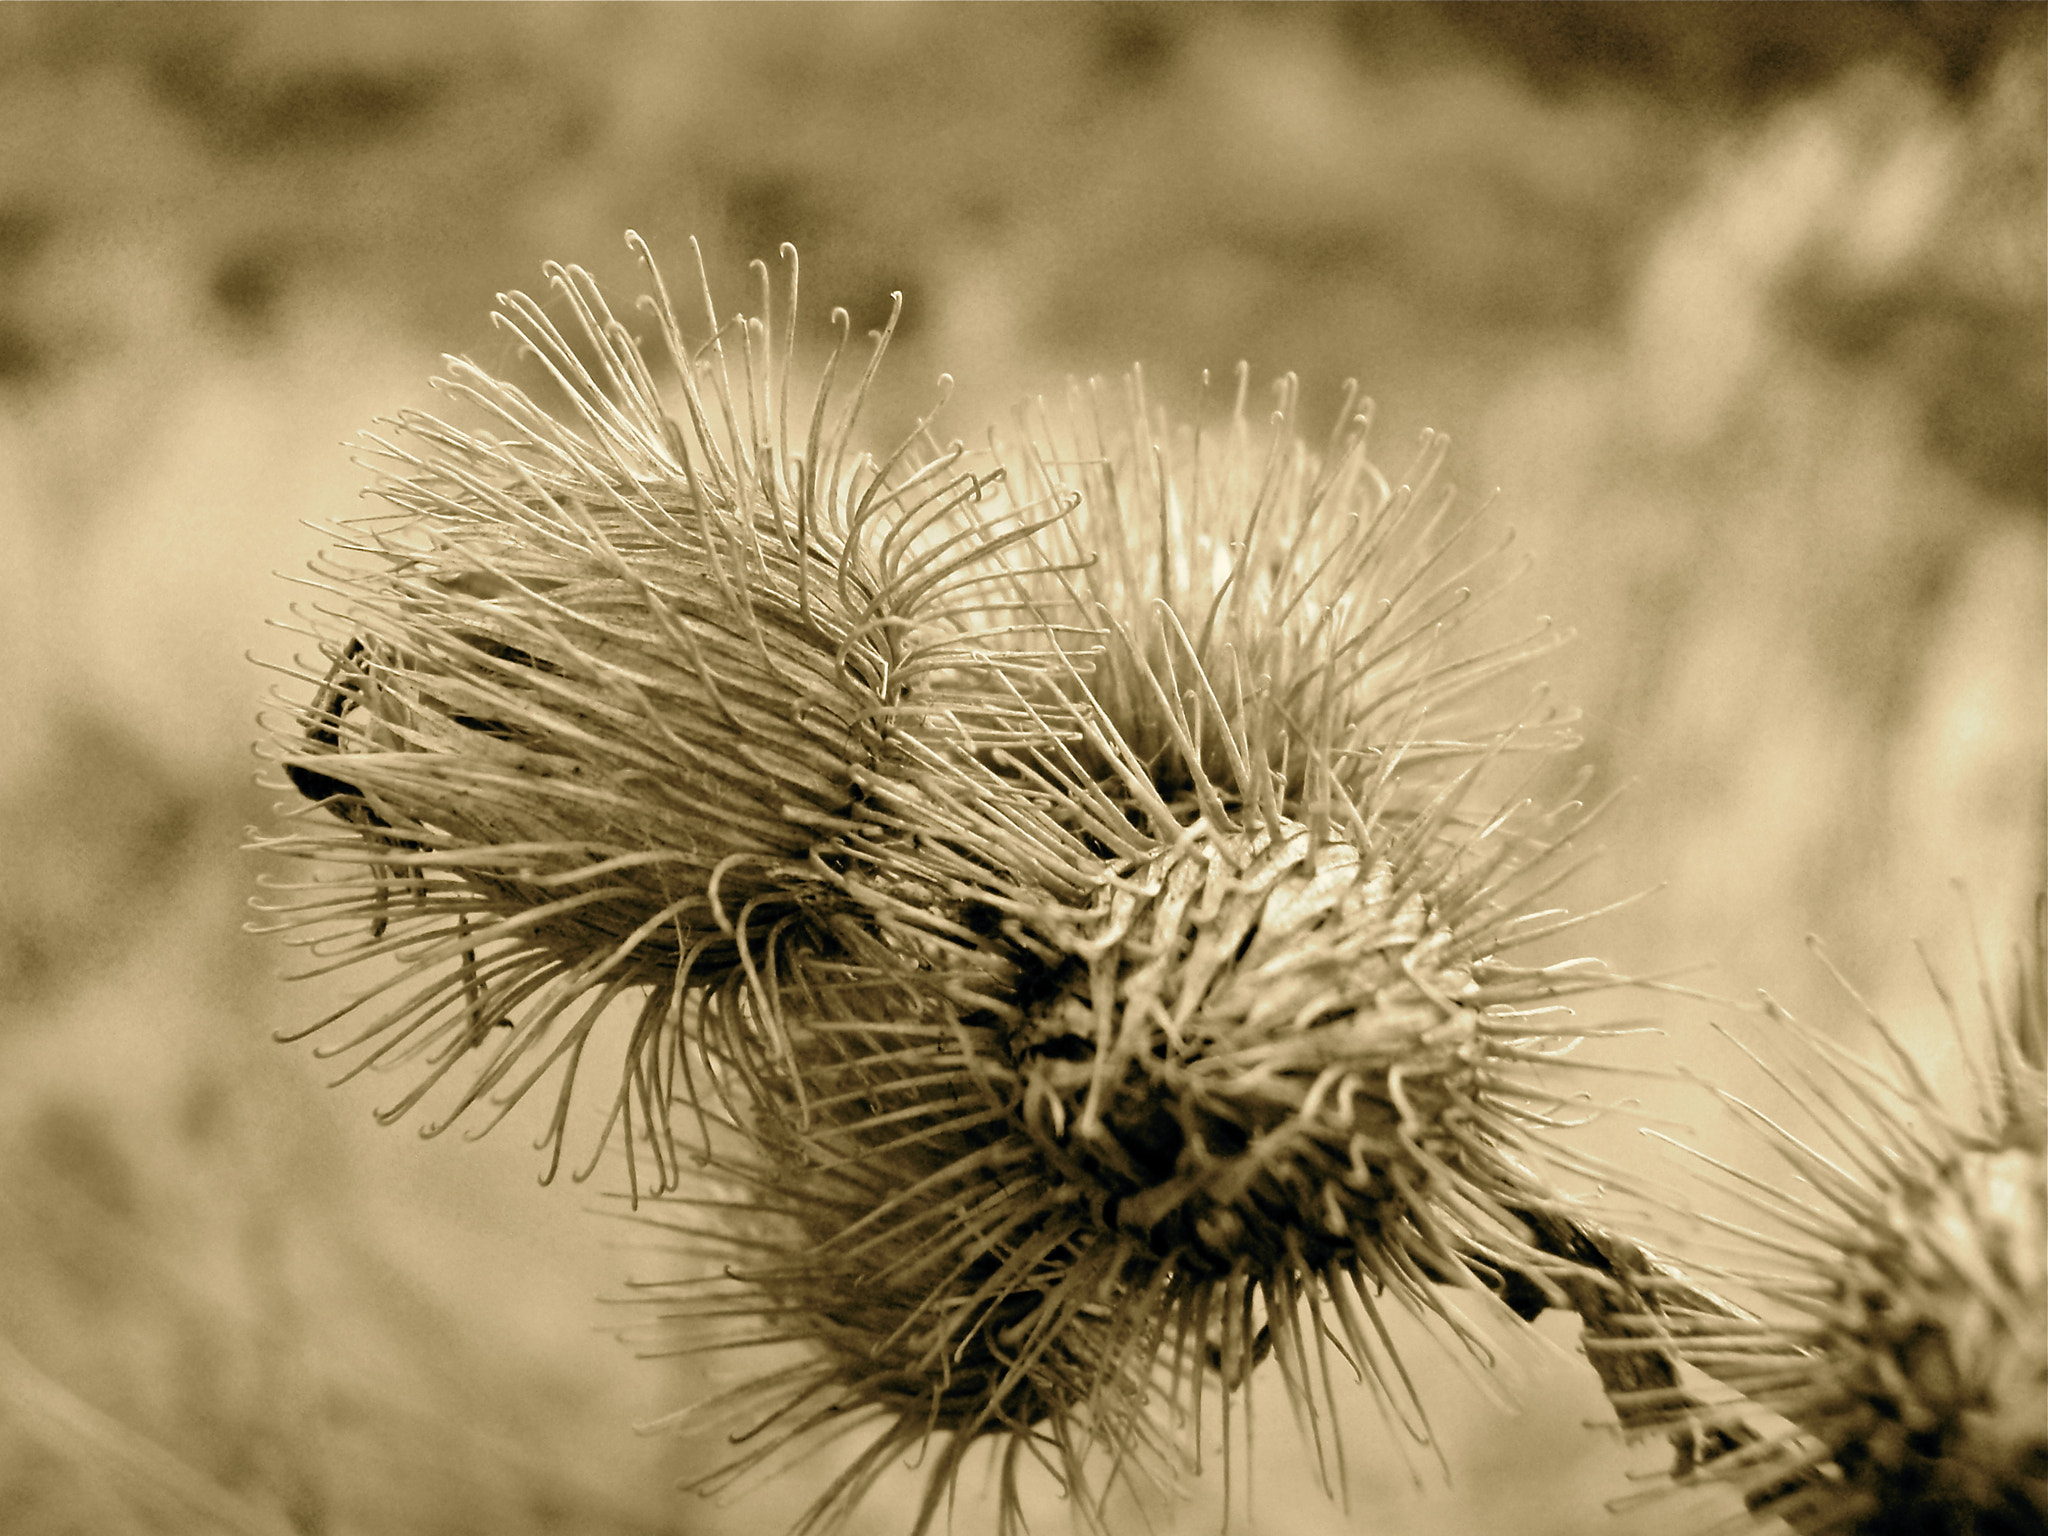 Photograph Burdock by A Cross on 500px